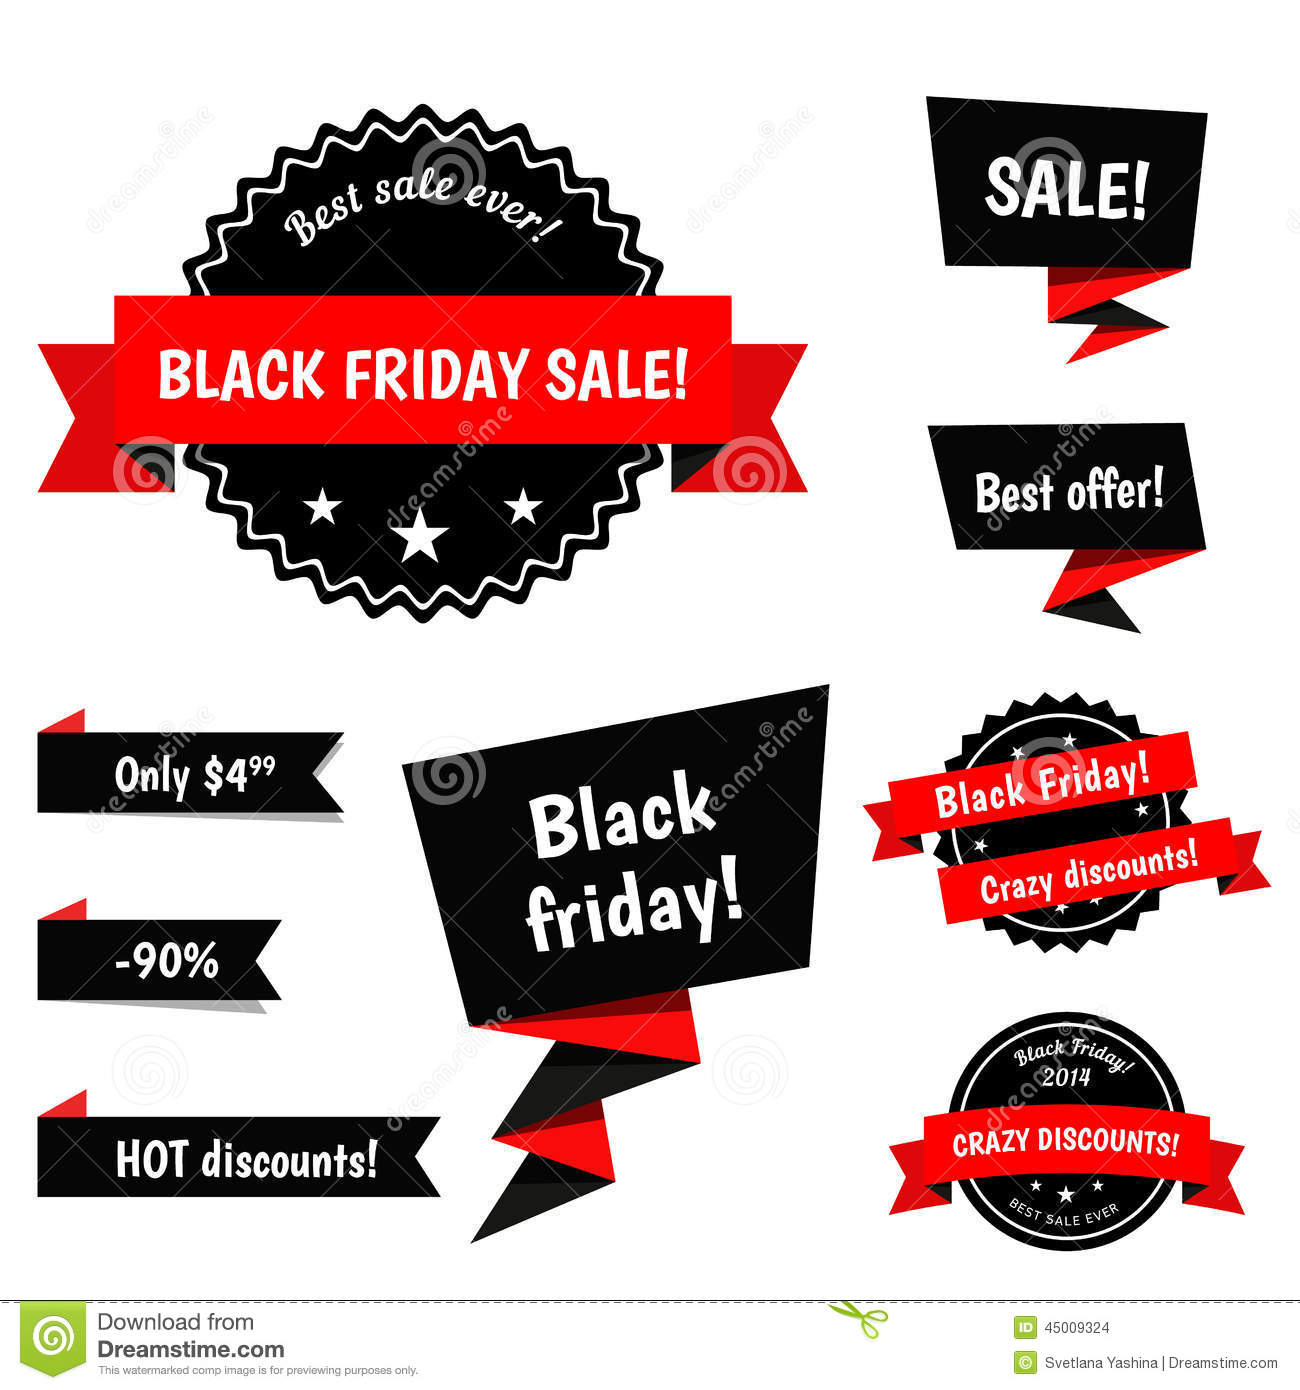 Friday Sale Black Friday Sale Vector Elements Stock Vector Image